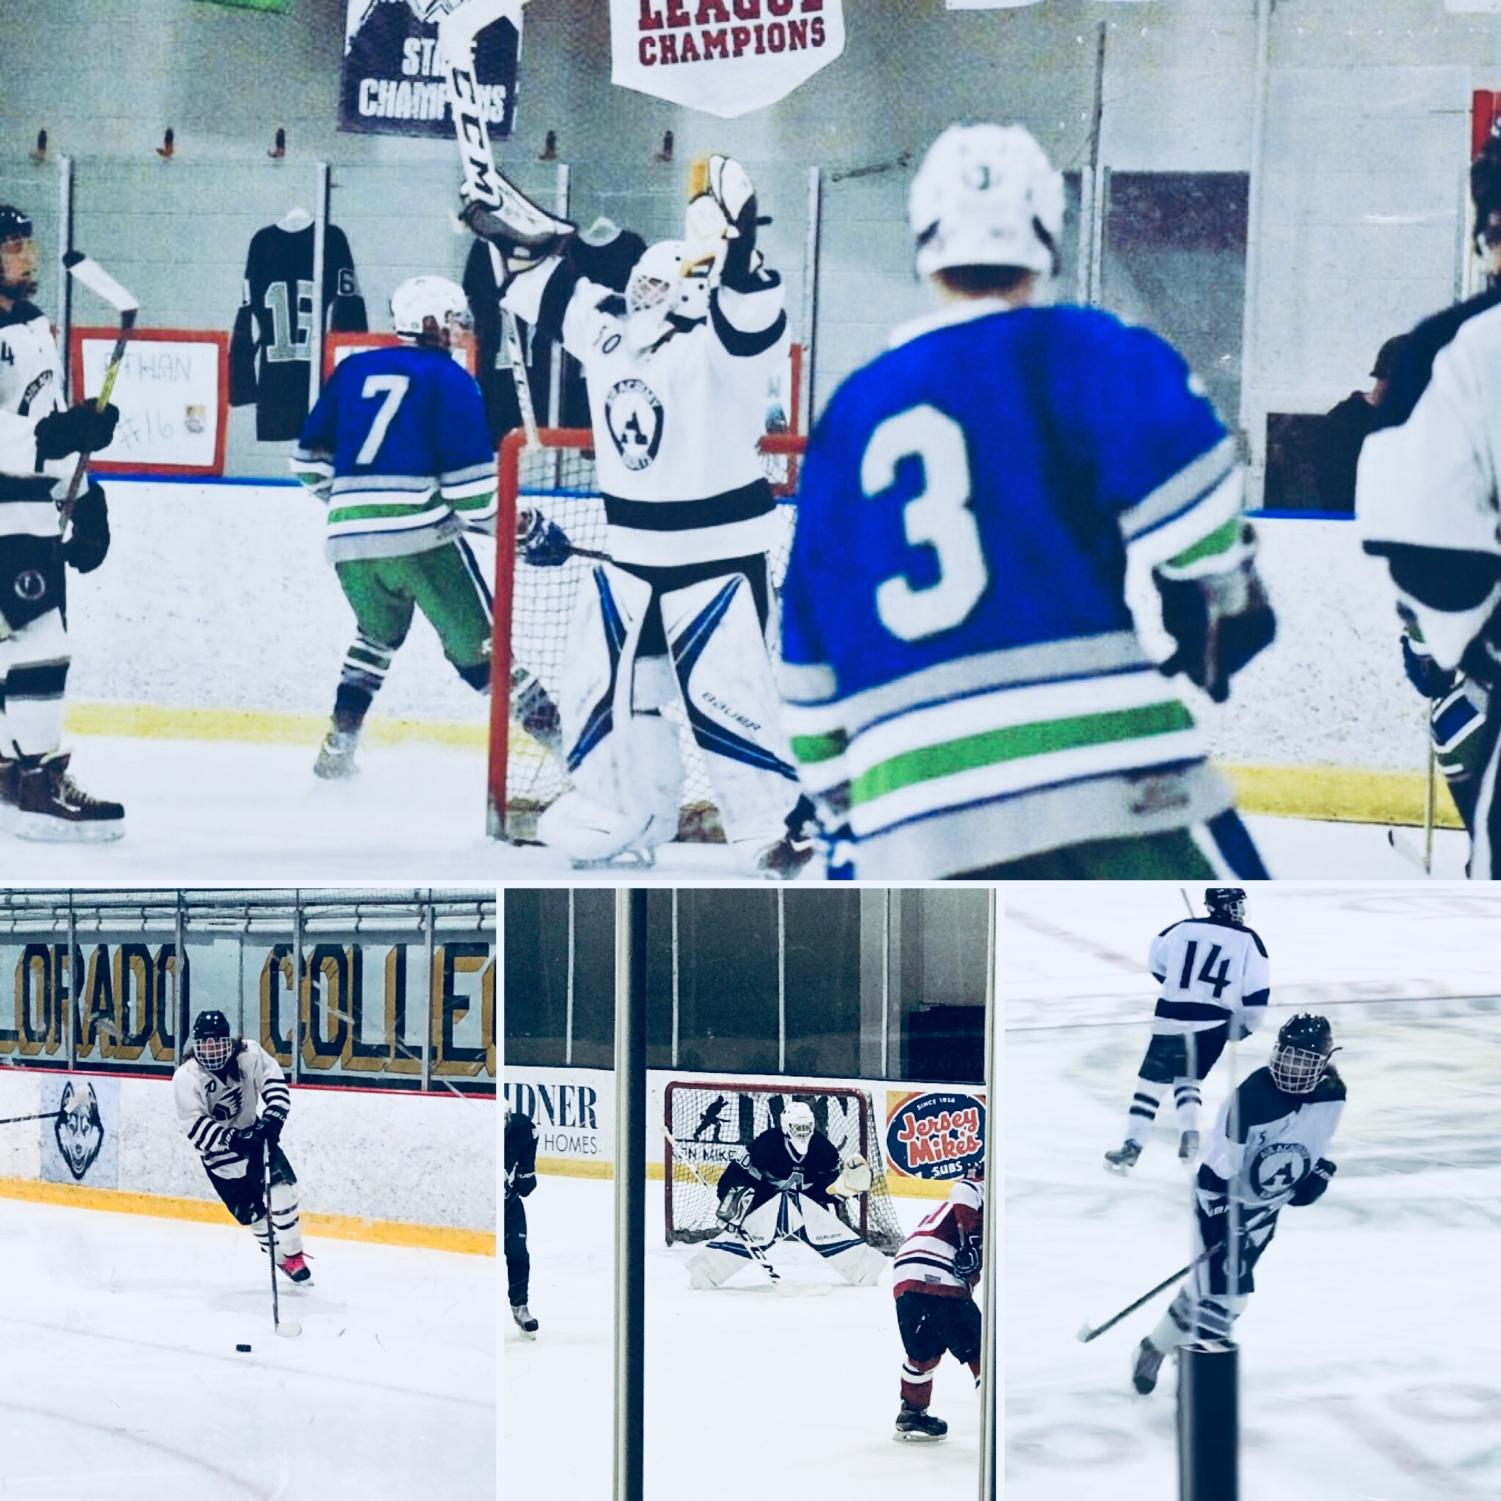 AAHS boys hockey team giving their all on the ice. Photos taken by: Jenilyn Grebe and Kaelyn Wheeler.